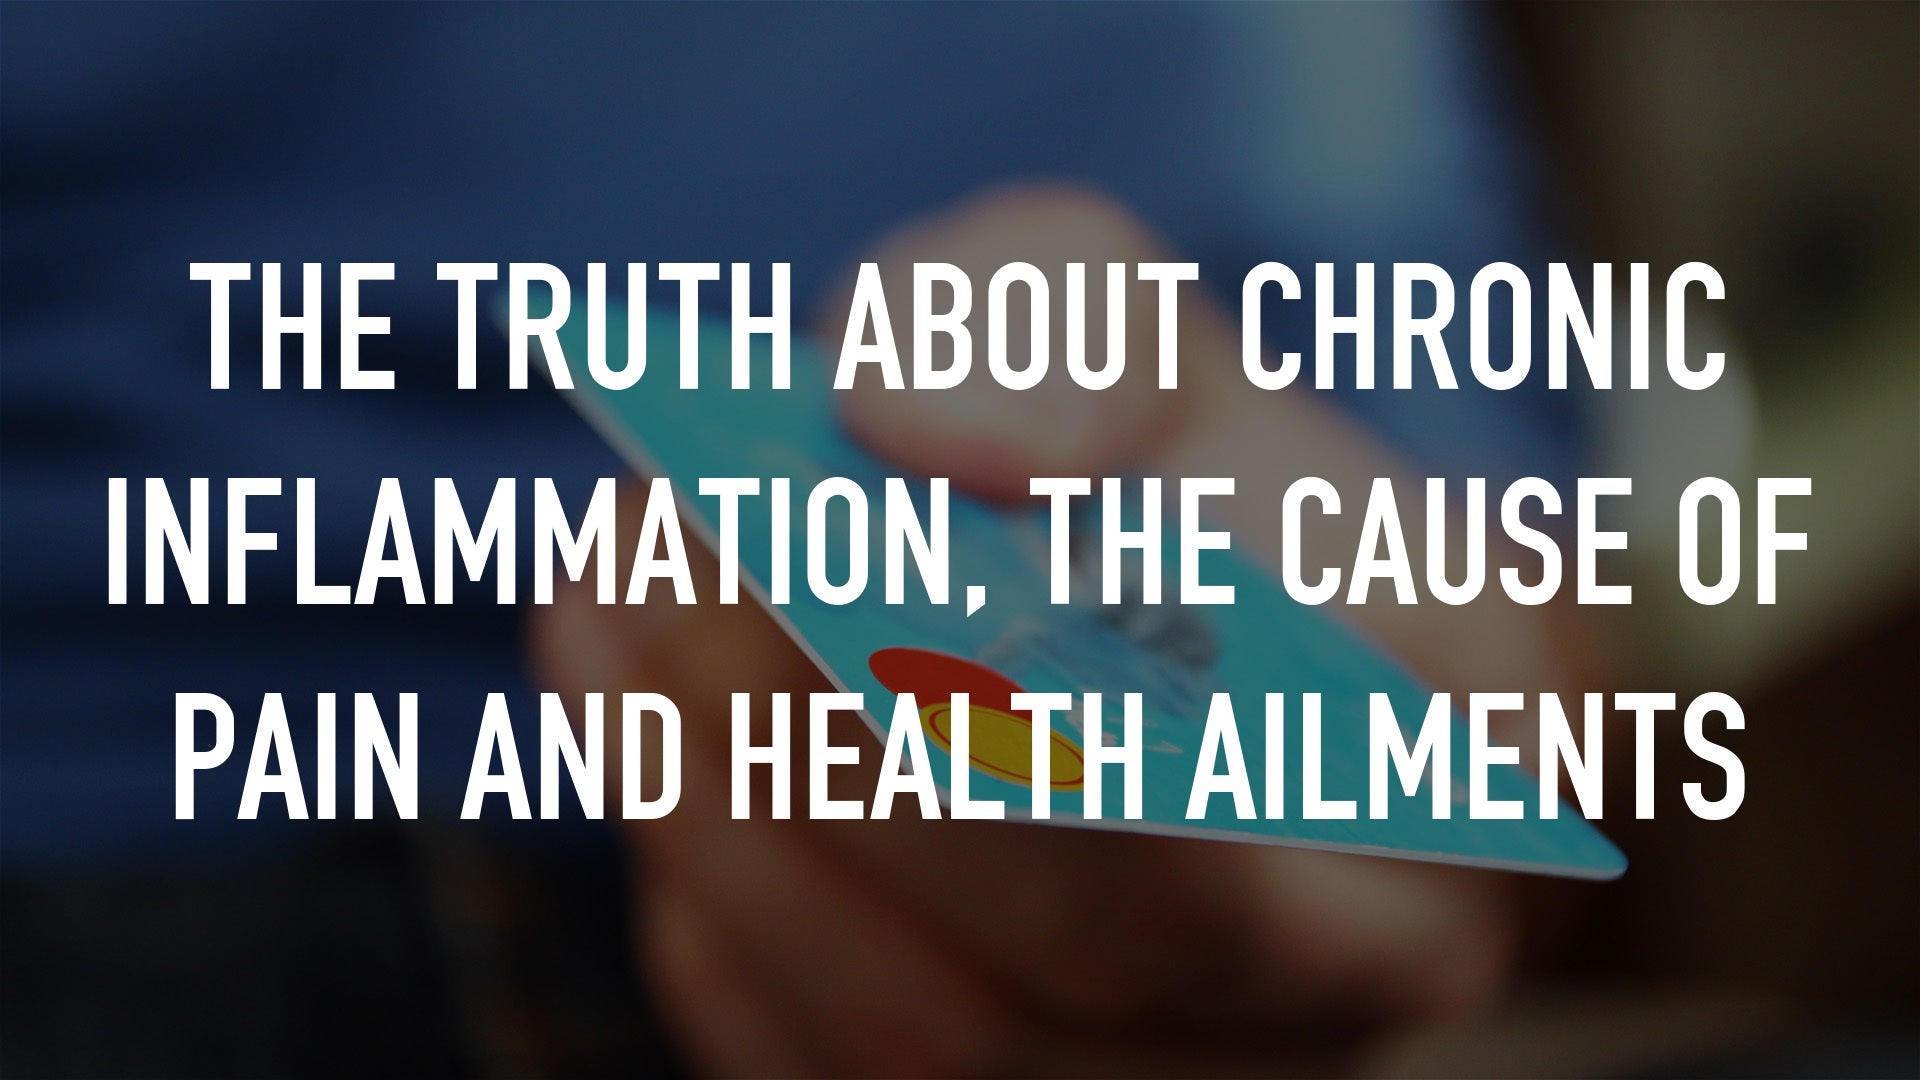 The Truth about Chronic Inflammation, the Cause of Pain and Health Ailments